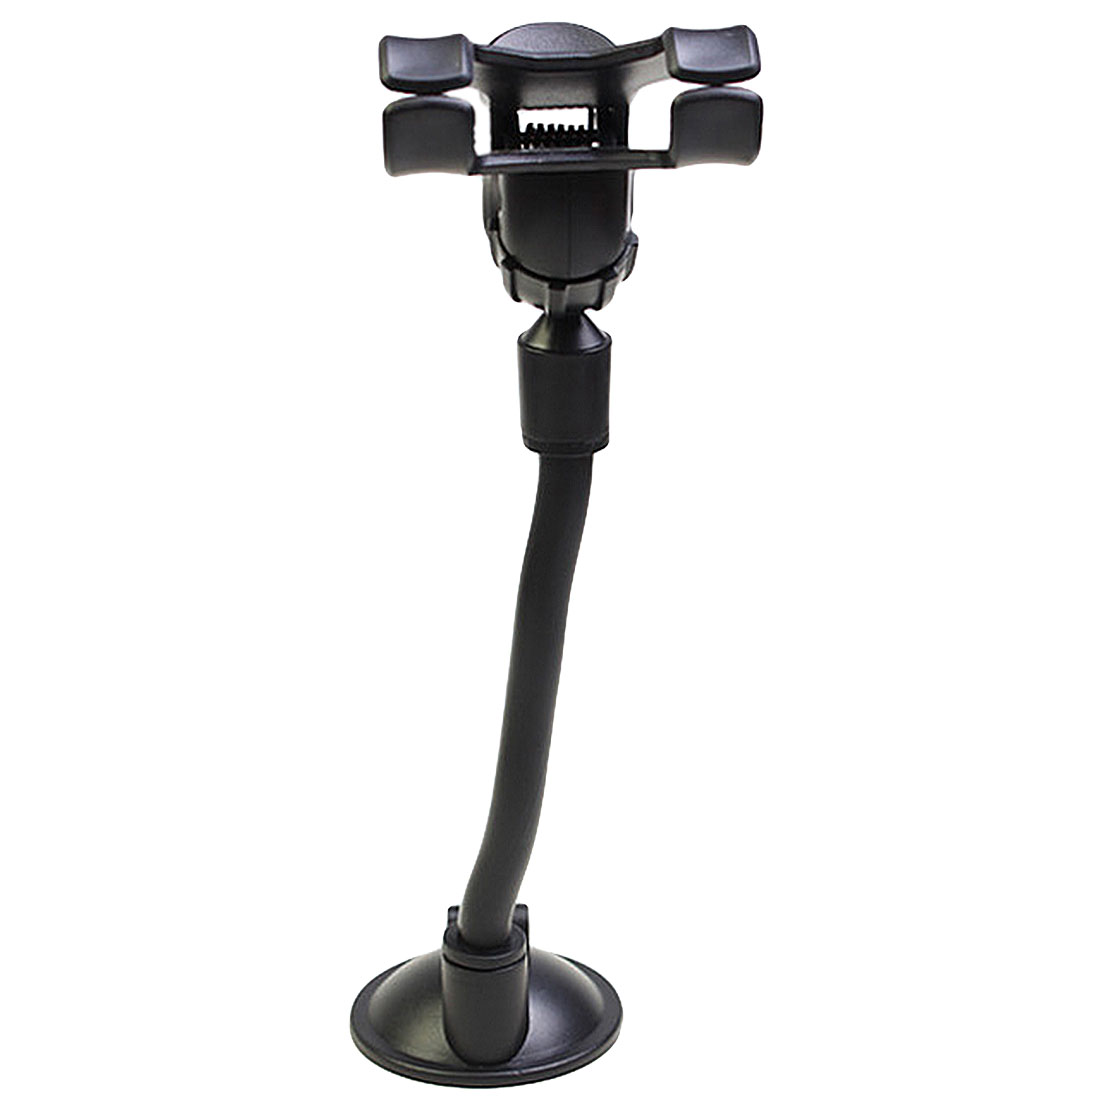 Dewtreetali Mobile Phone Mount holder with suction cup Multi-angle 360 Degree Rotating Clip Windshield Smartphone Car Holder sx 005 360 degree rotating vehicle general magnetic phone mount holder